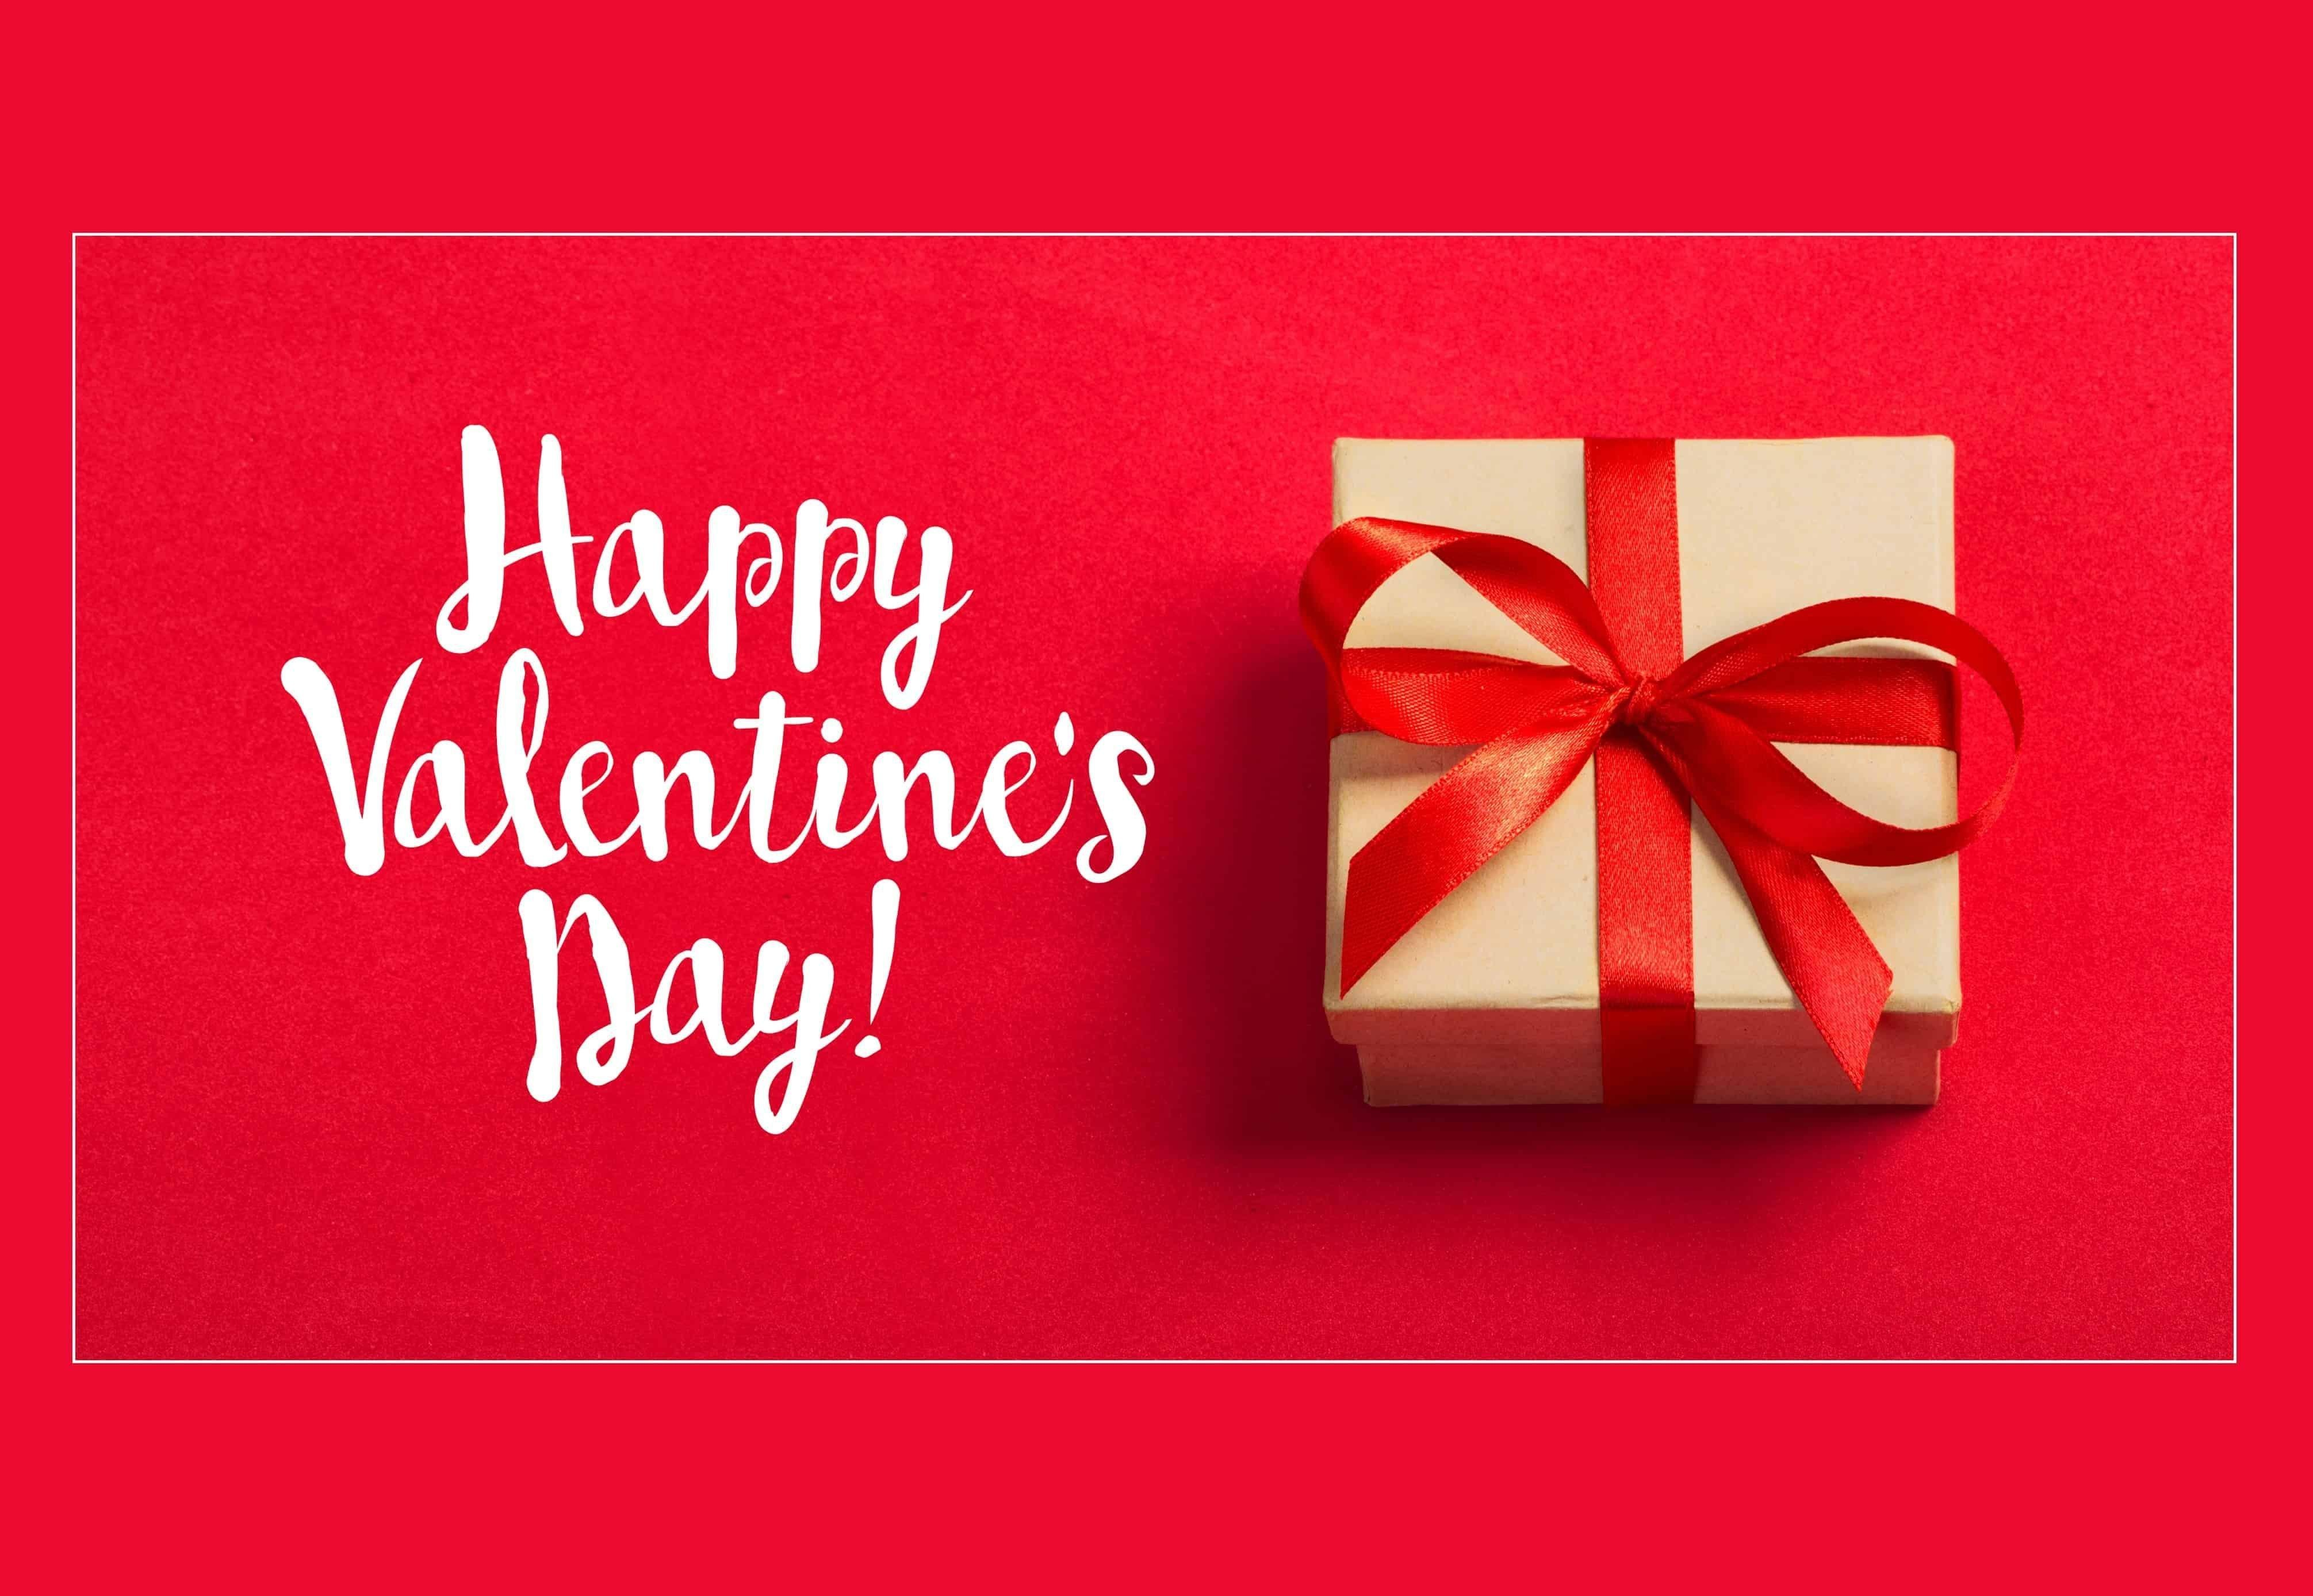 Valentines Day Gift Guide For People With Diabetes